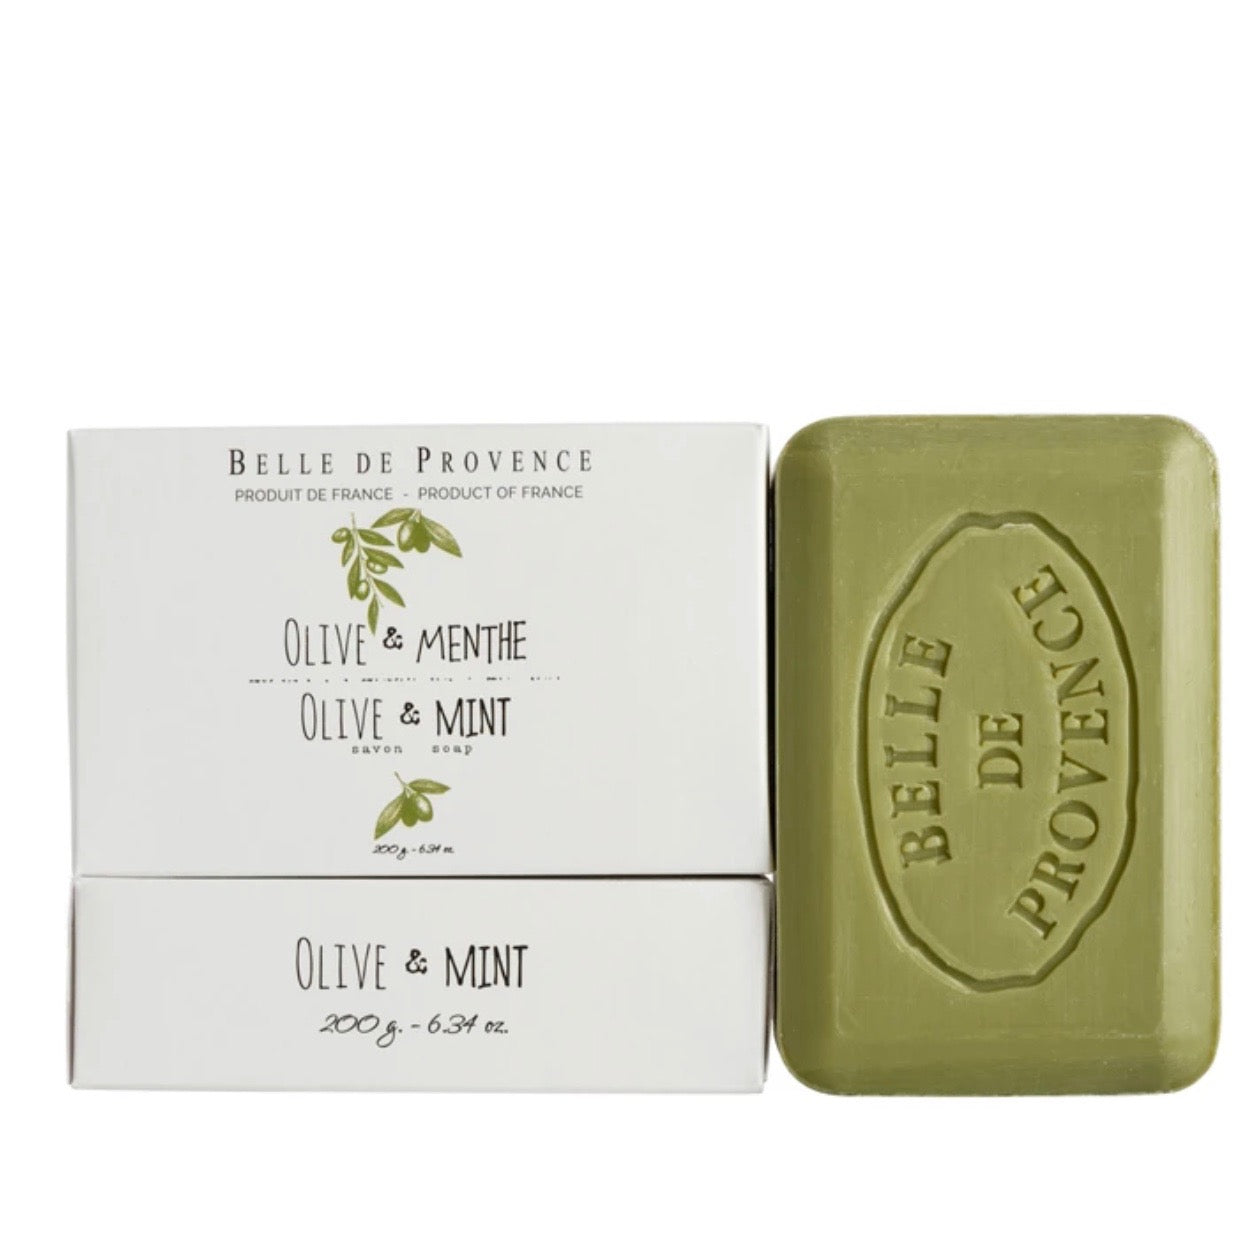 Belle de Provence Bar Soap 200g - Olive Mint